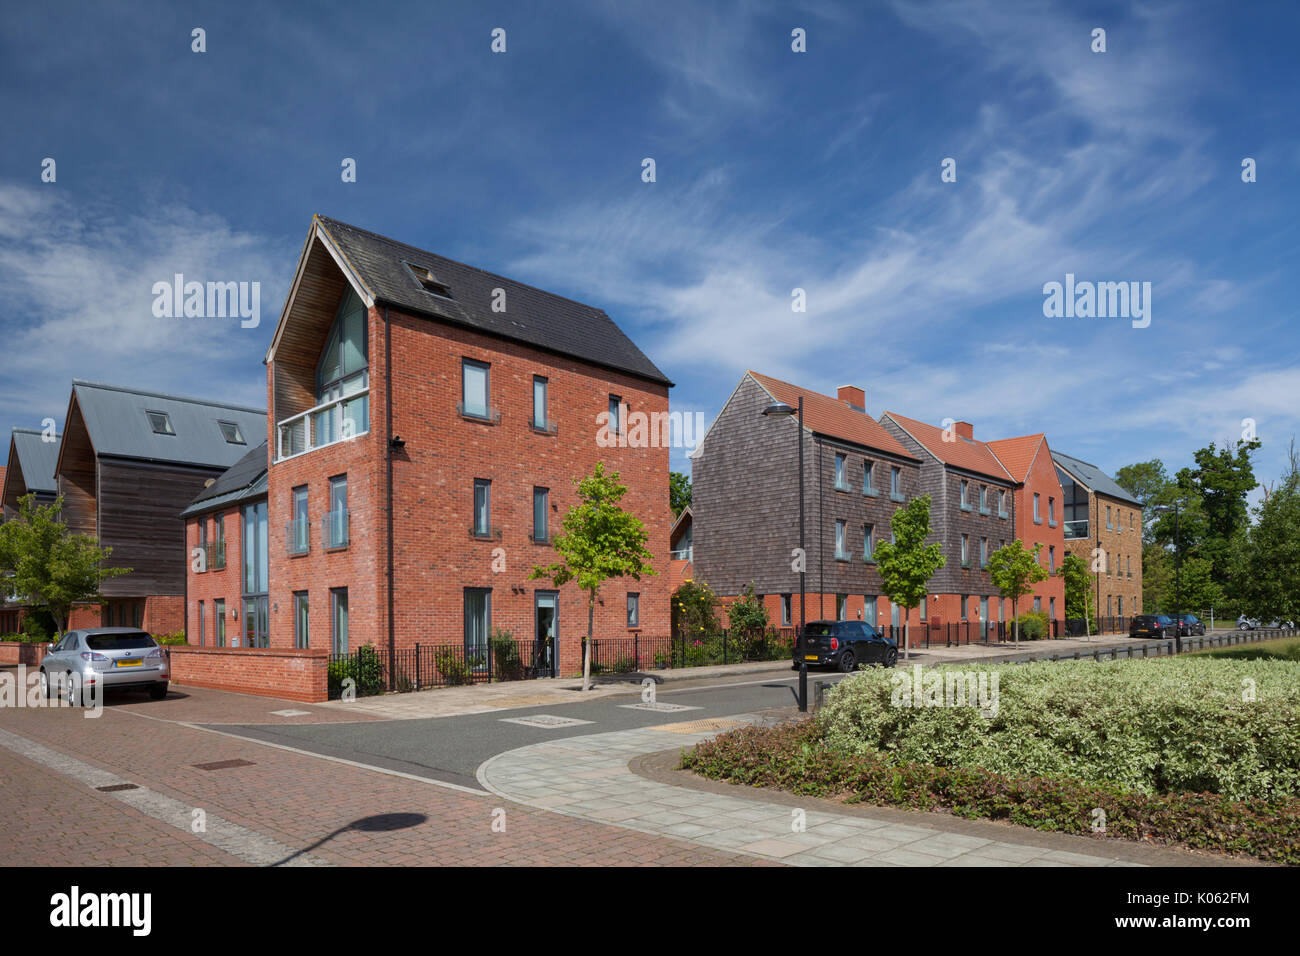 Contemporary Eco-designed modern suburban housing development with trees lining street at Upton, South West District, Northampton, England. - Stock Image